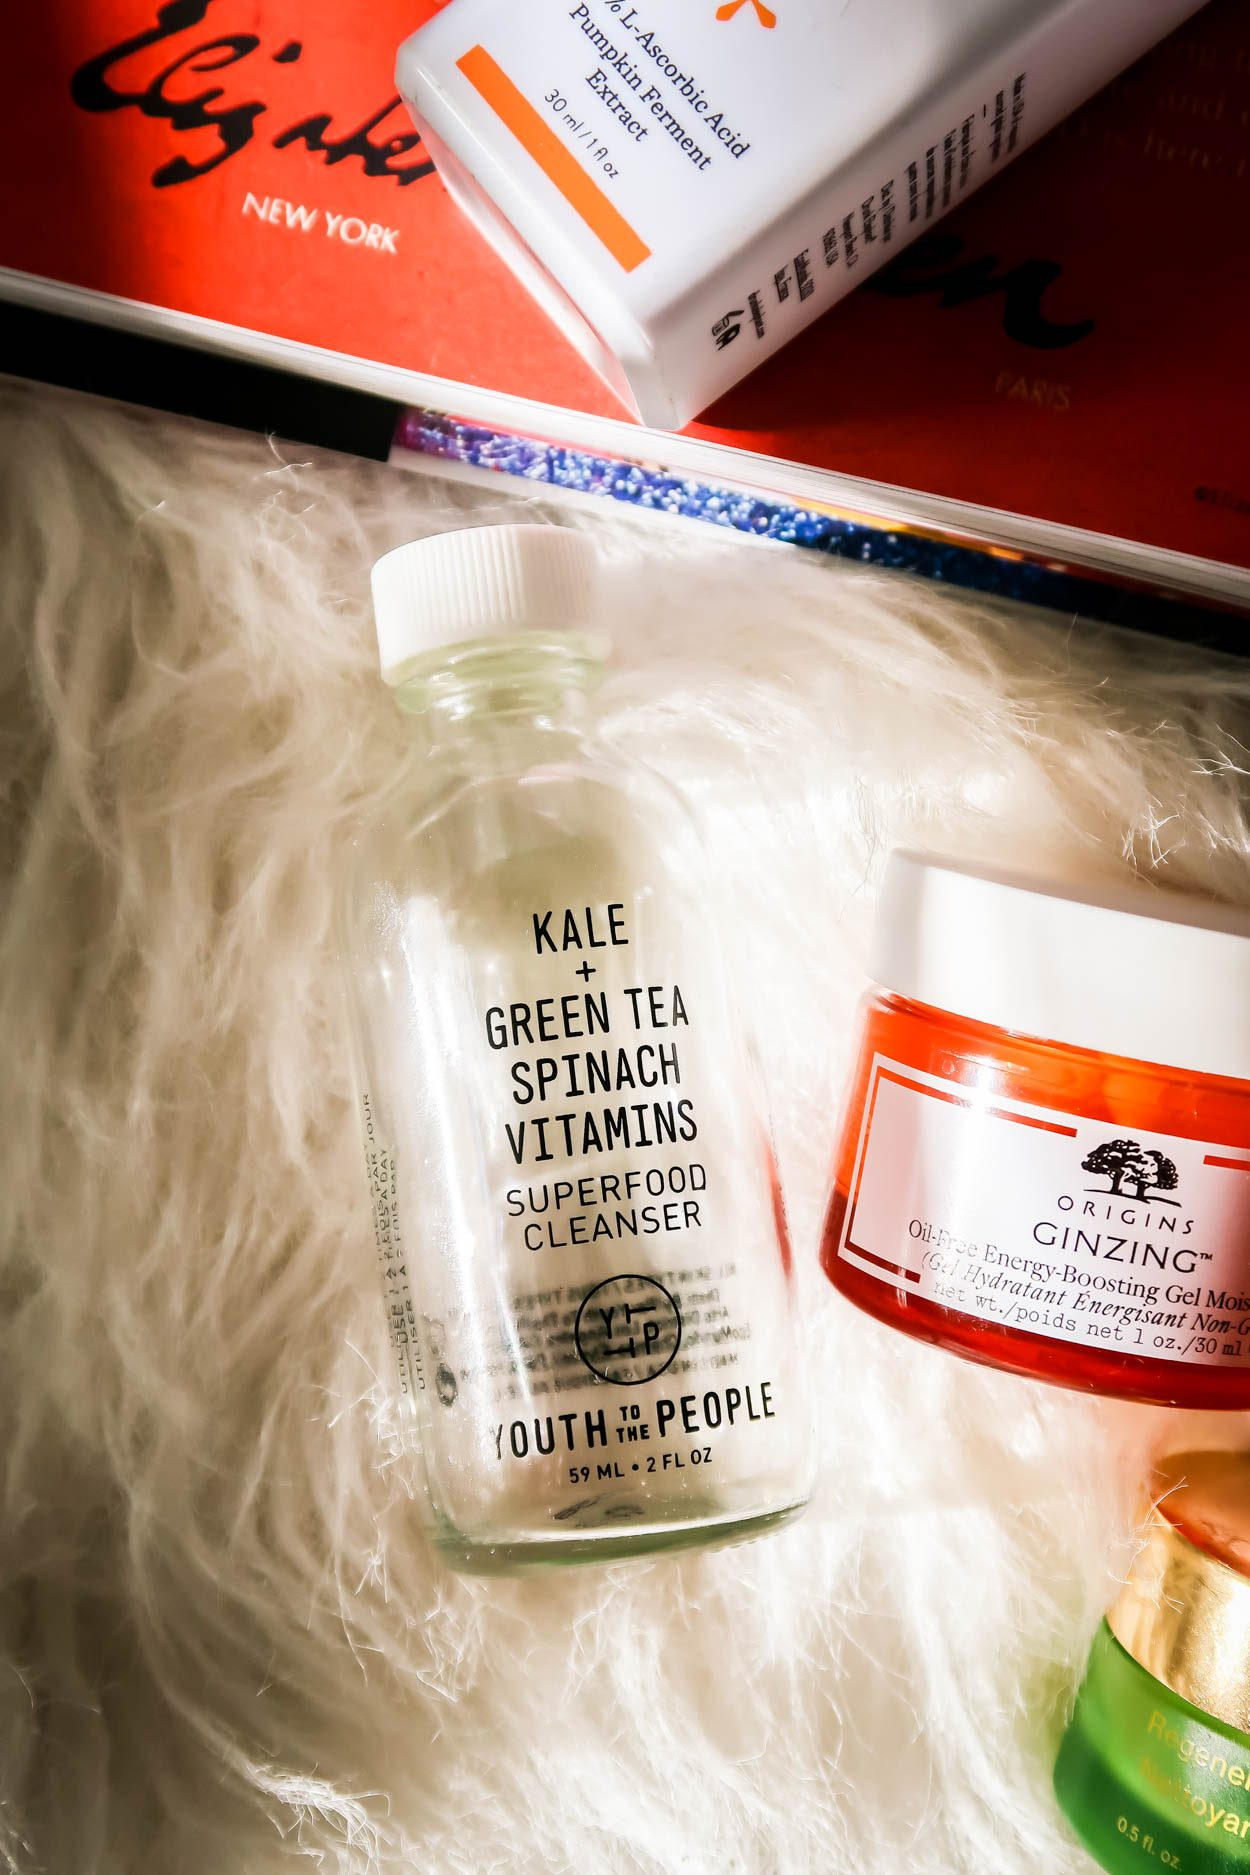 My Four Most Used Skincare Products